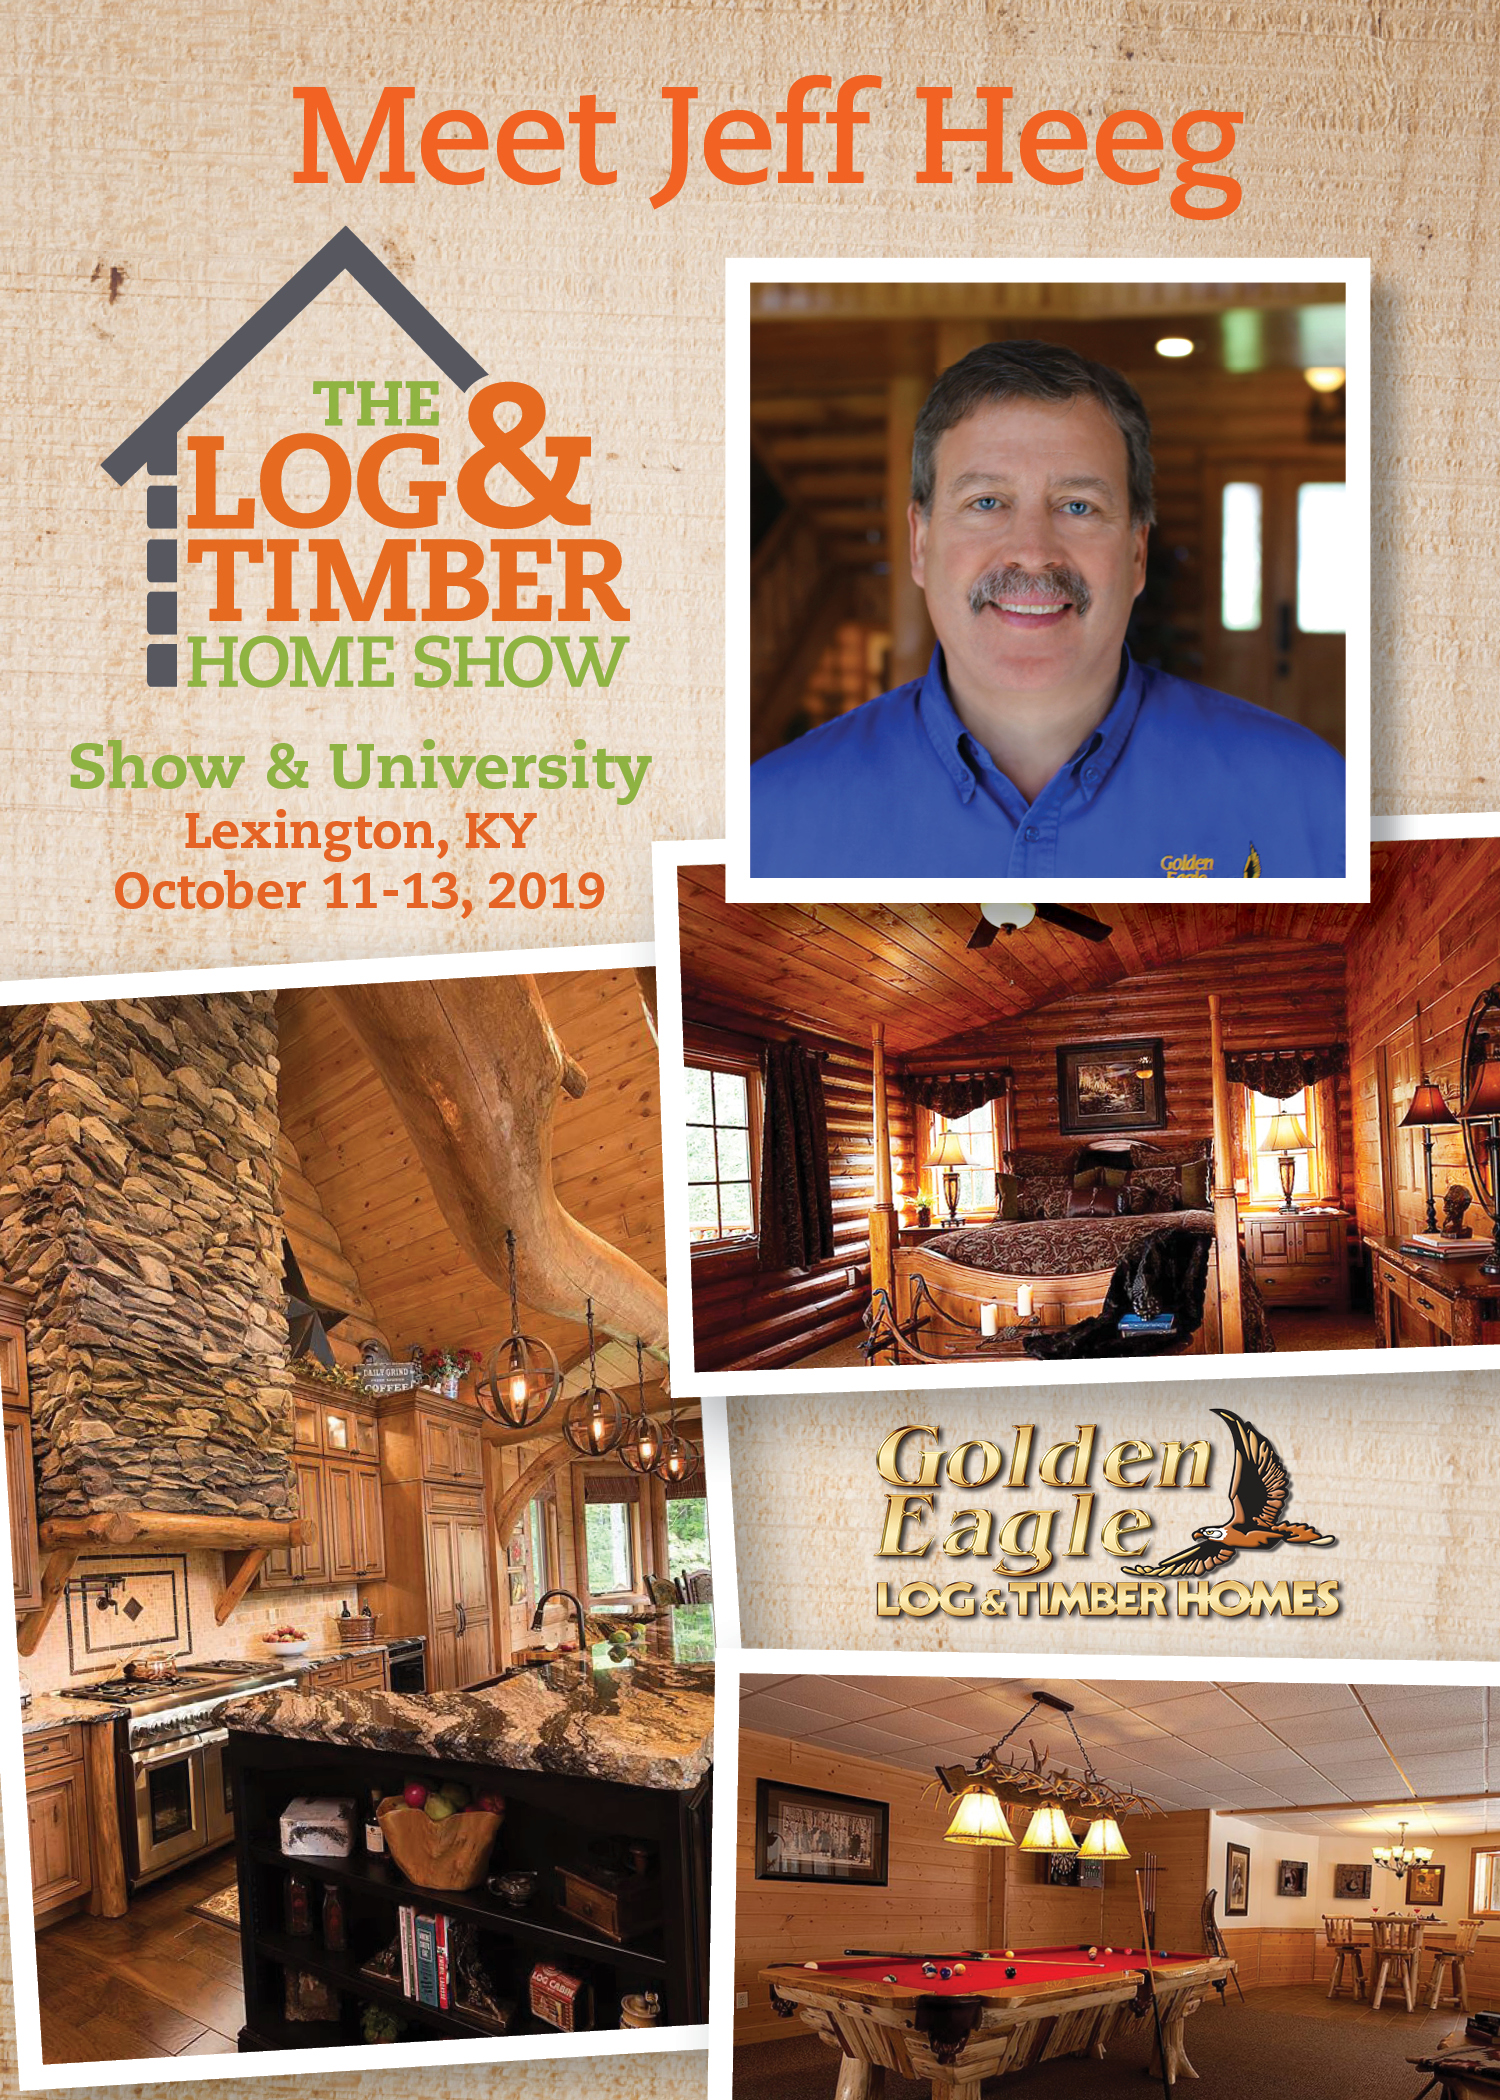 Lexington, KY | Golden Eagle Log & Timber Homes | Workshop | October 11-13, 2019 | Log & Timber Home Show